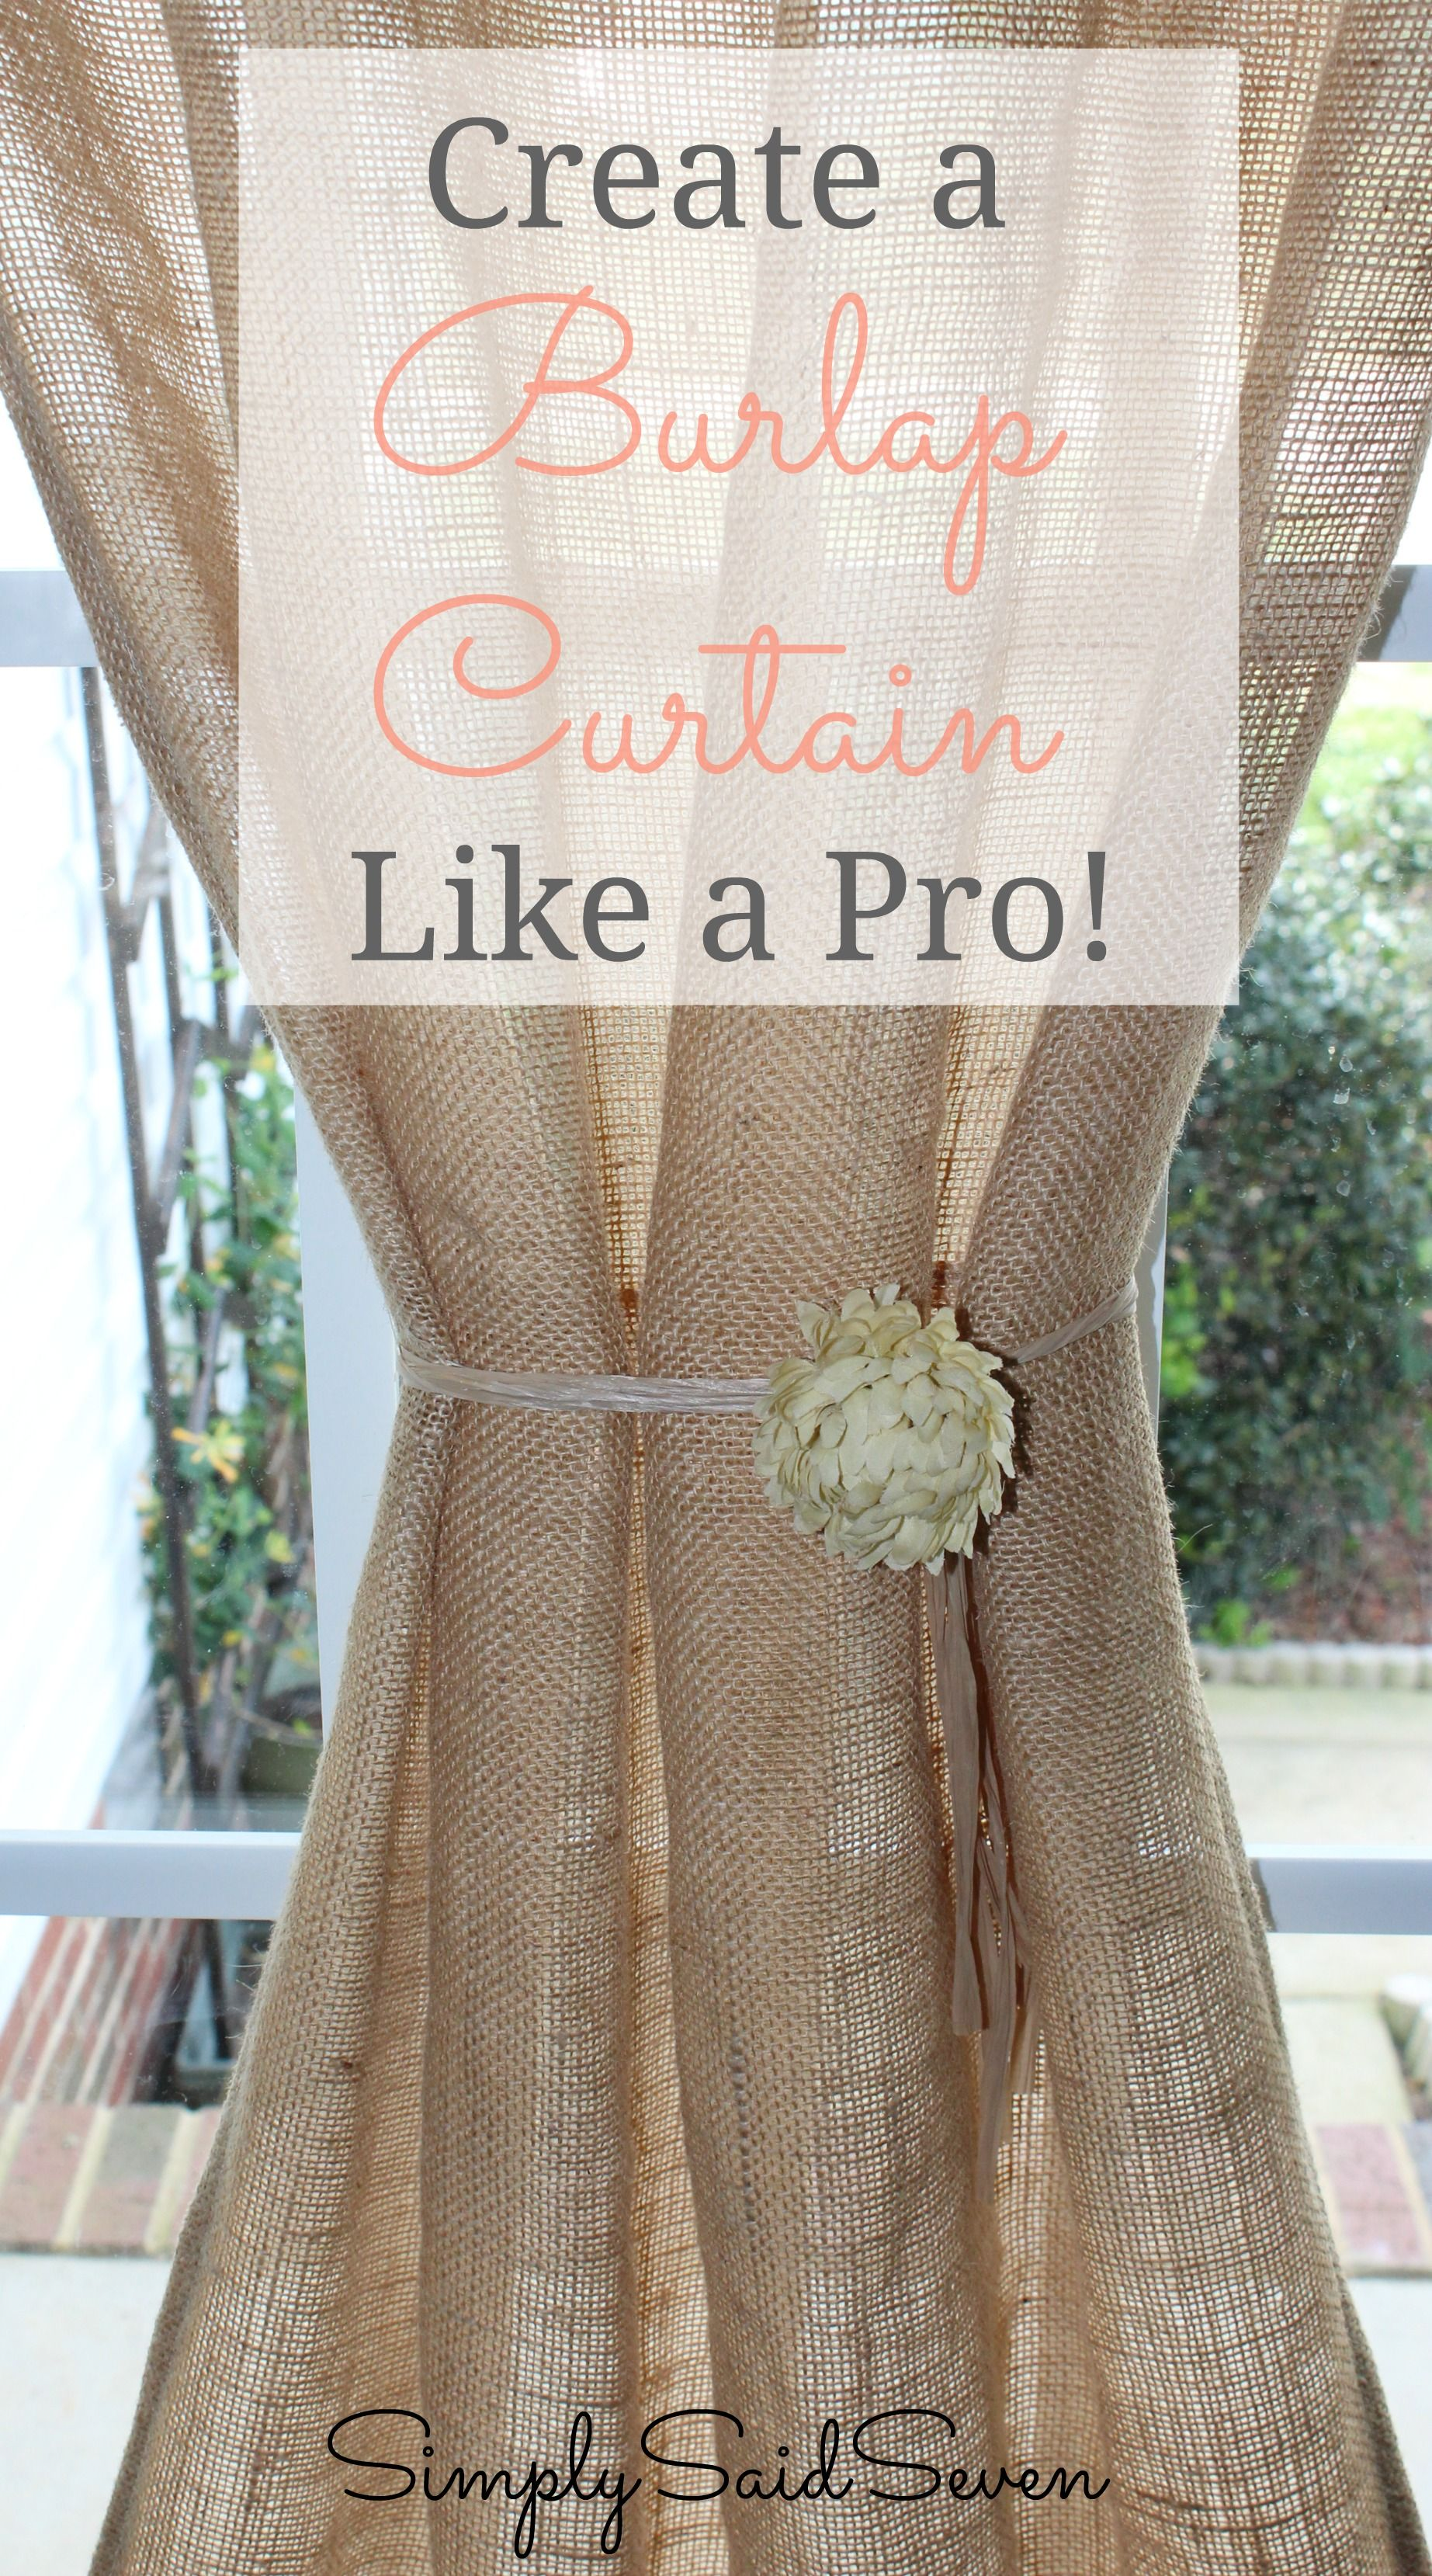 No Sew Burlap Curtains | No-sew burlap curtains - Randi with an